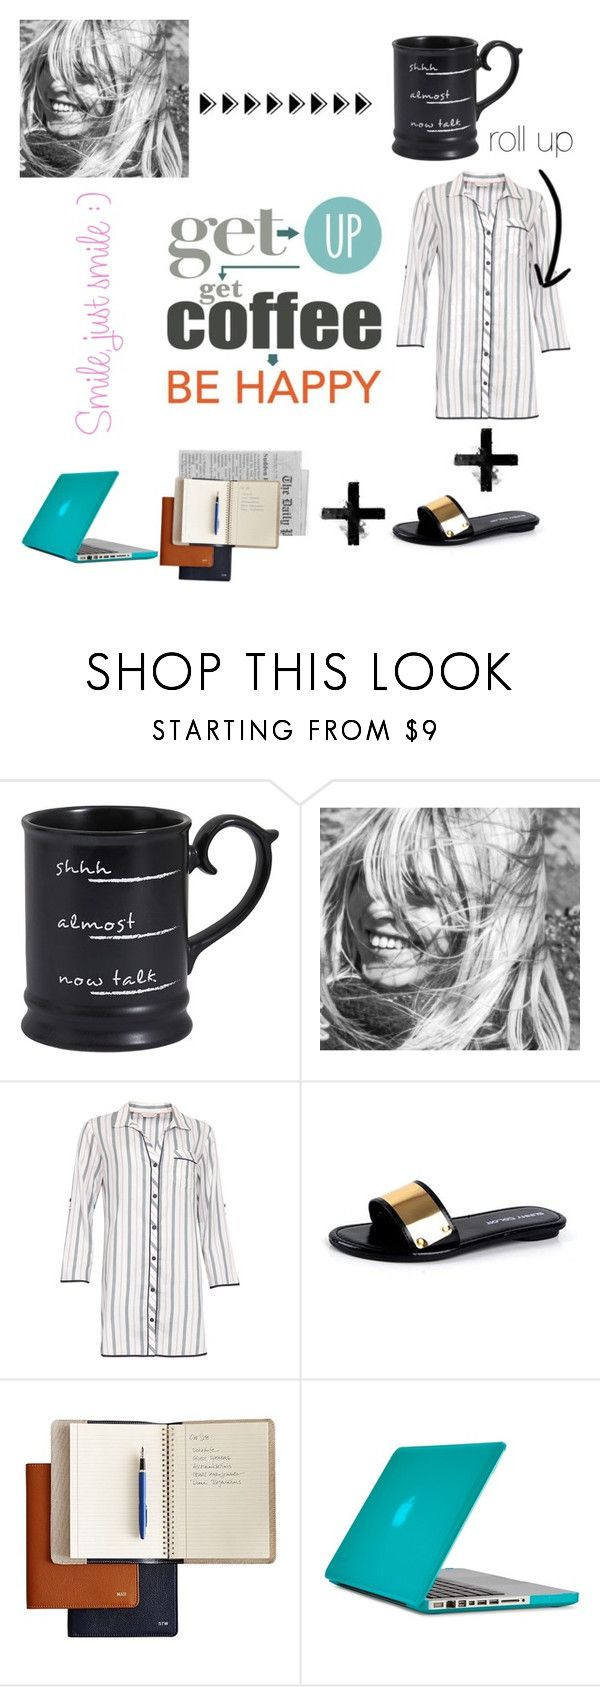 """B U T   F I R S T , C O F F E E"" by gabrielleleroy ❤ liked on Polyvore featuring Expresso, Pier 1 Imports, Cyberjammies, Mark & Graham, Speck, contest, polyvoreeditorial and coffeebreak"